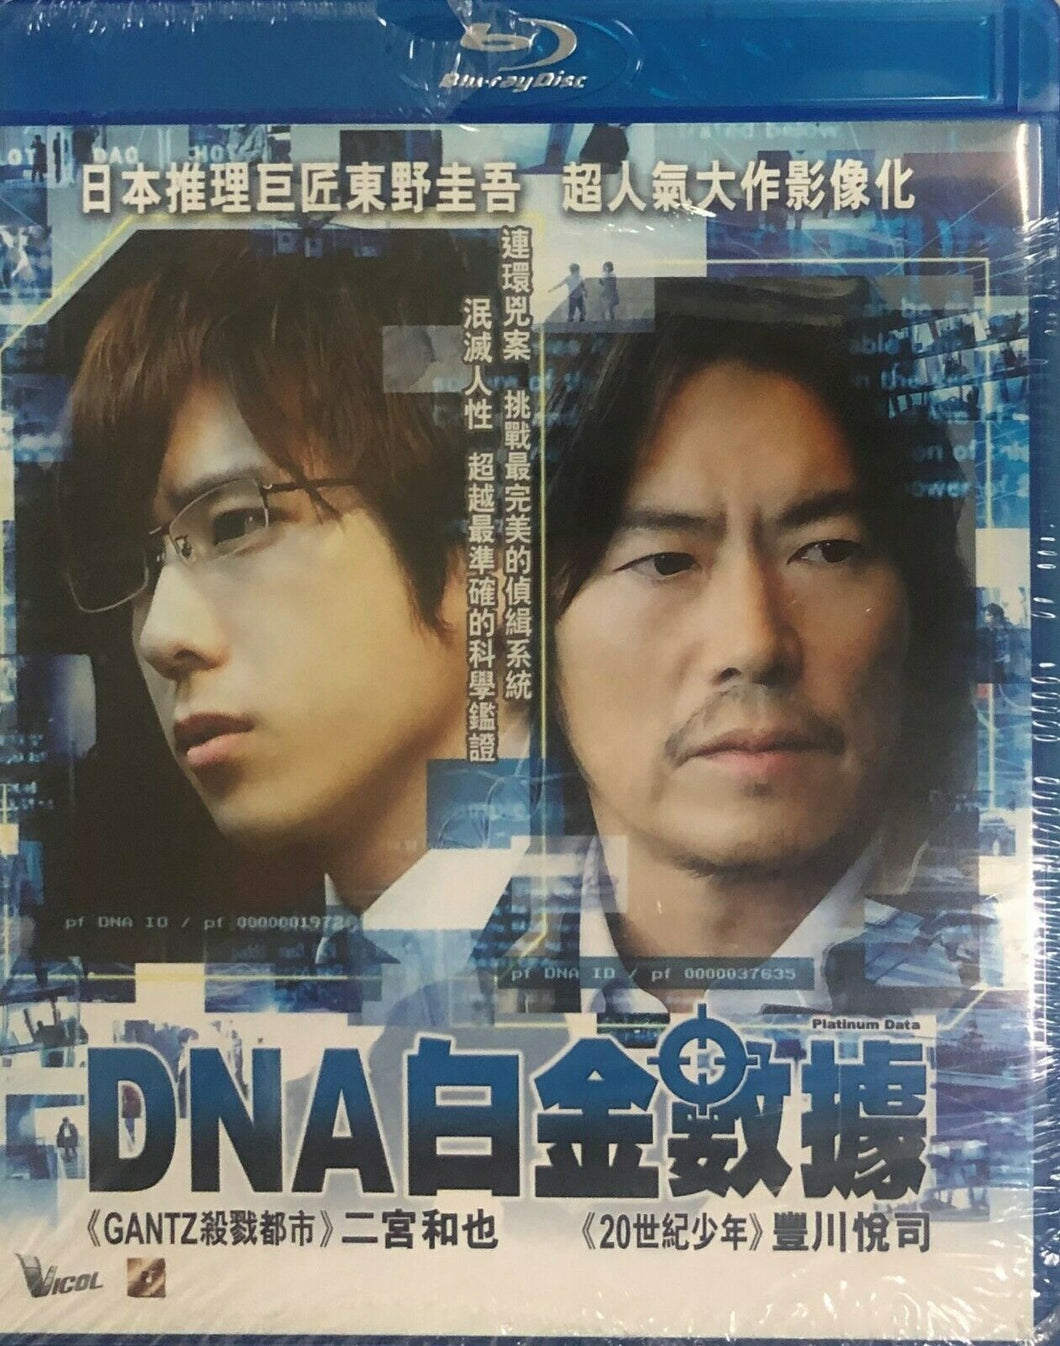 Platinum Data  DNA白金數據 2013 (Japanese Movie) BLU-RAY with English Subtitles (Region A)